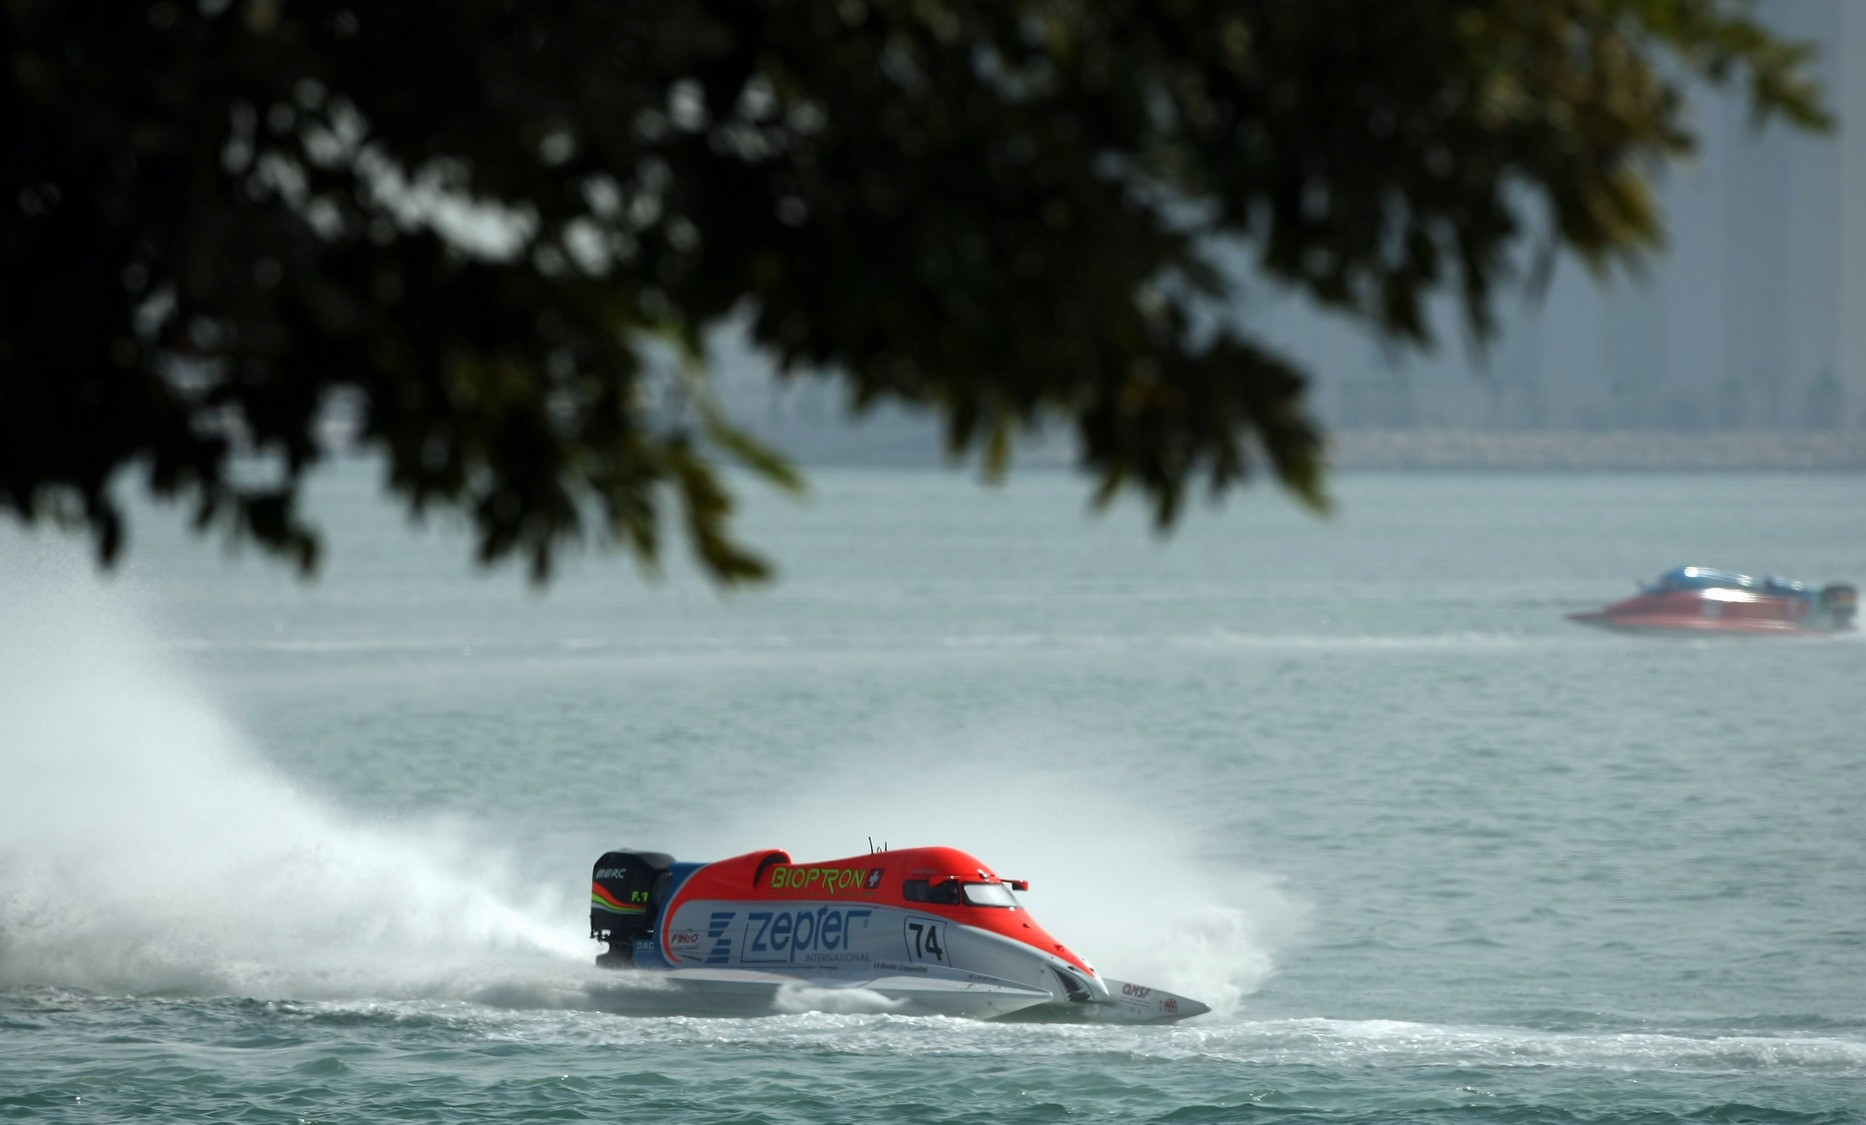 GP OF QATAR-271109-Guido Cappellini of Italy of the Zepter team in action in preparation for the UIM F1 Powerboat Grand Prix of Qatar, on the Doha Corniche, Doha, Qatar, the race days are November 27-28, 2009. Picture by Paul Lakatos/Idea Marketing.